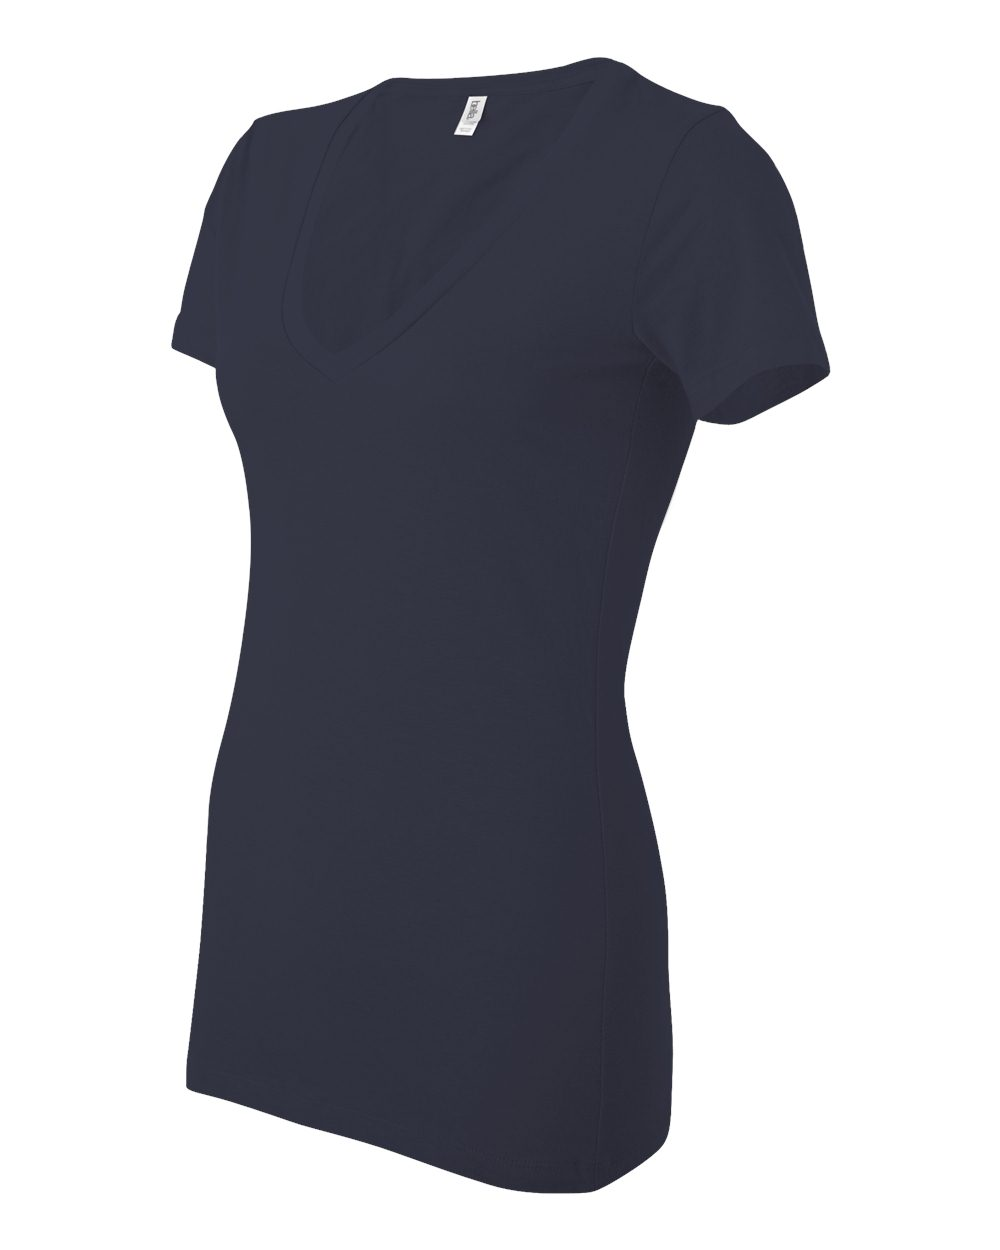 Bella-Canvas-Women-039-s-Jersey-Short-Sleeve-Deep-V-Neck-T-Shirt-B6035-S-2XL thumbnail 72